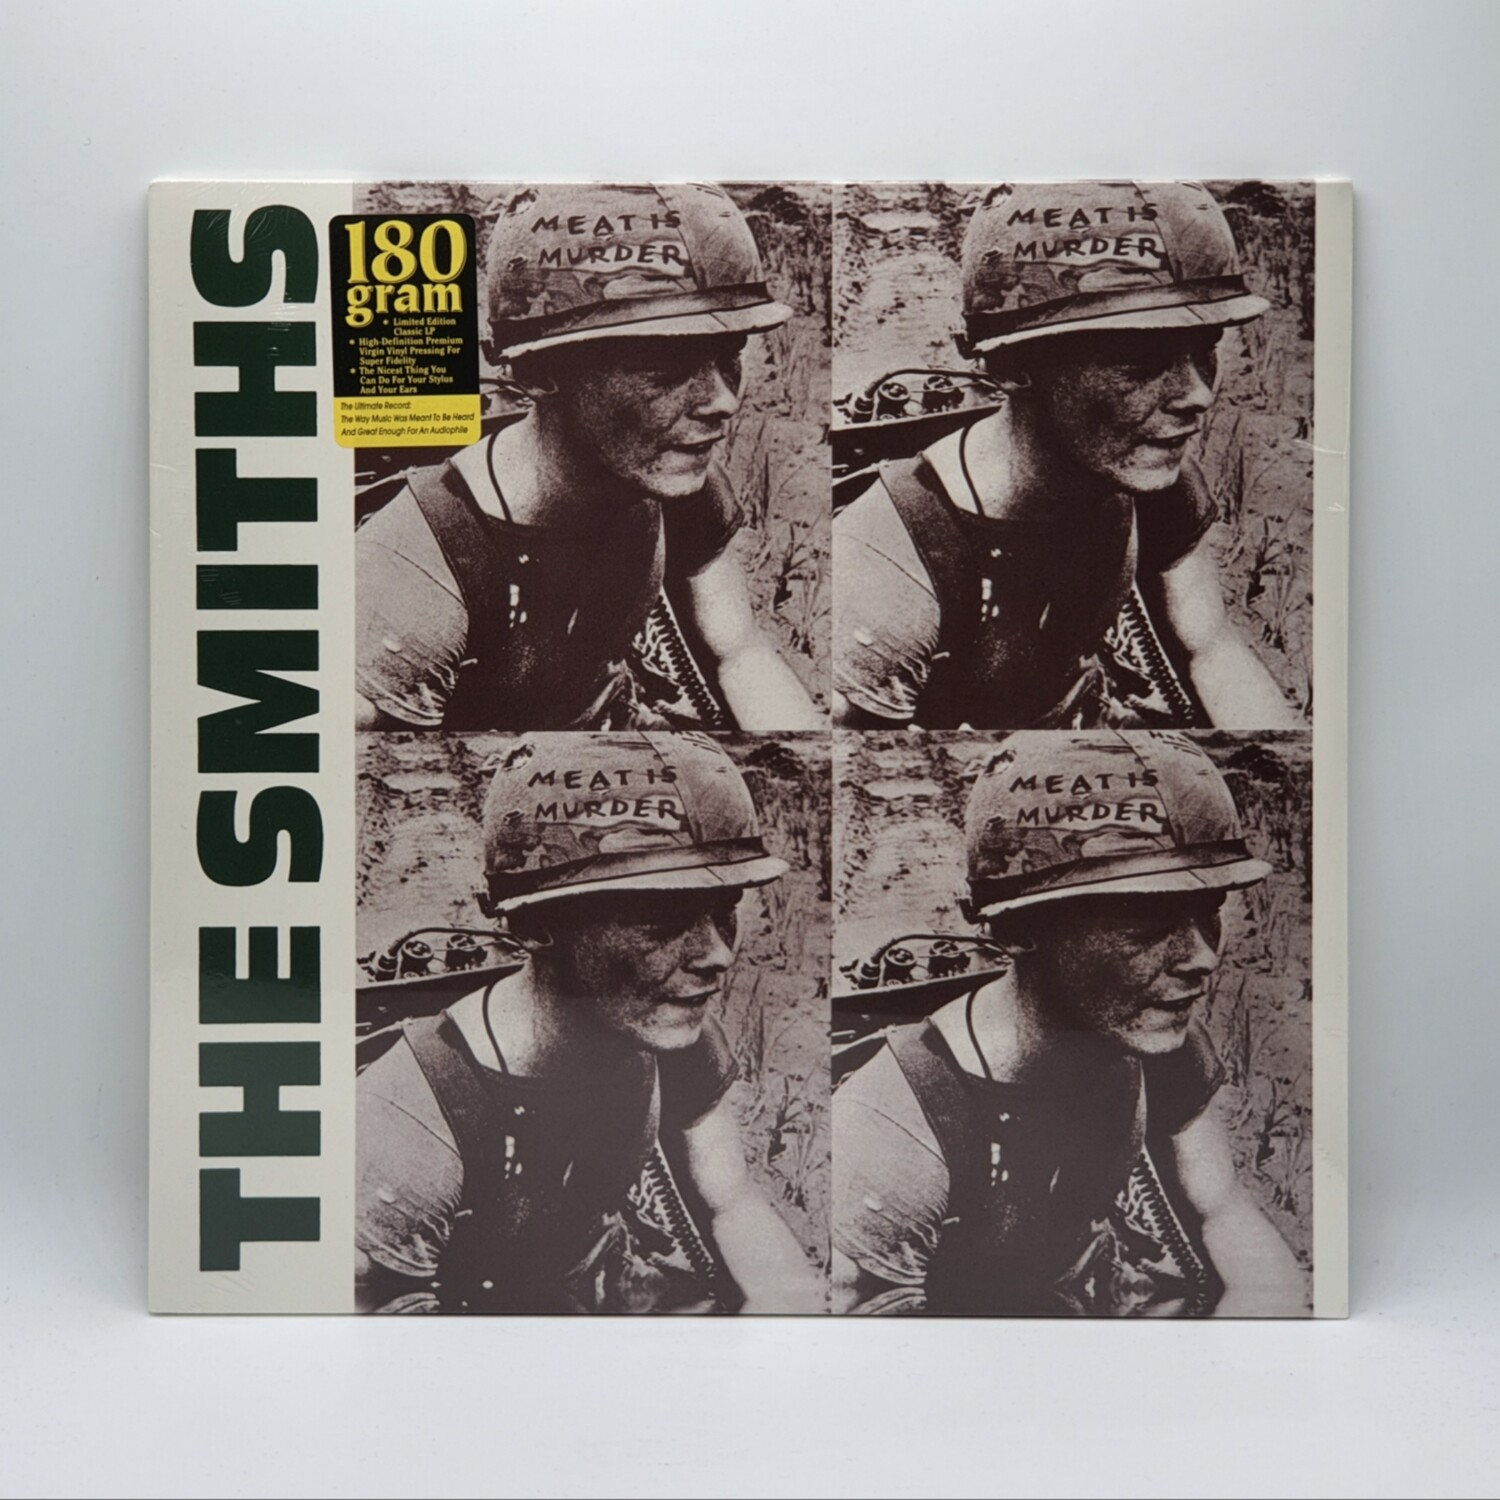 THE SMITH -MEAT IS MURDER- LP (180 GRAN VINYL)